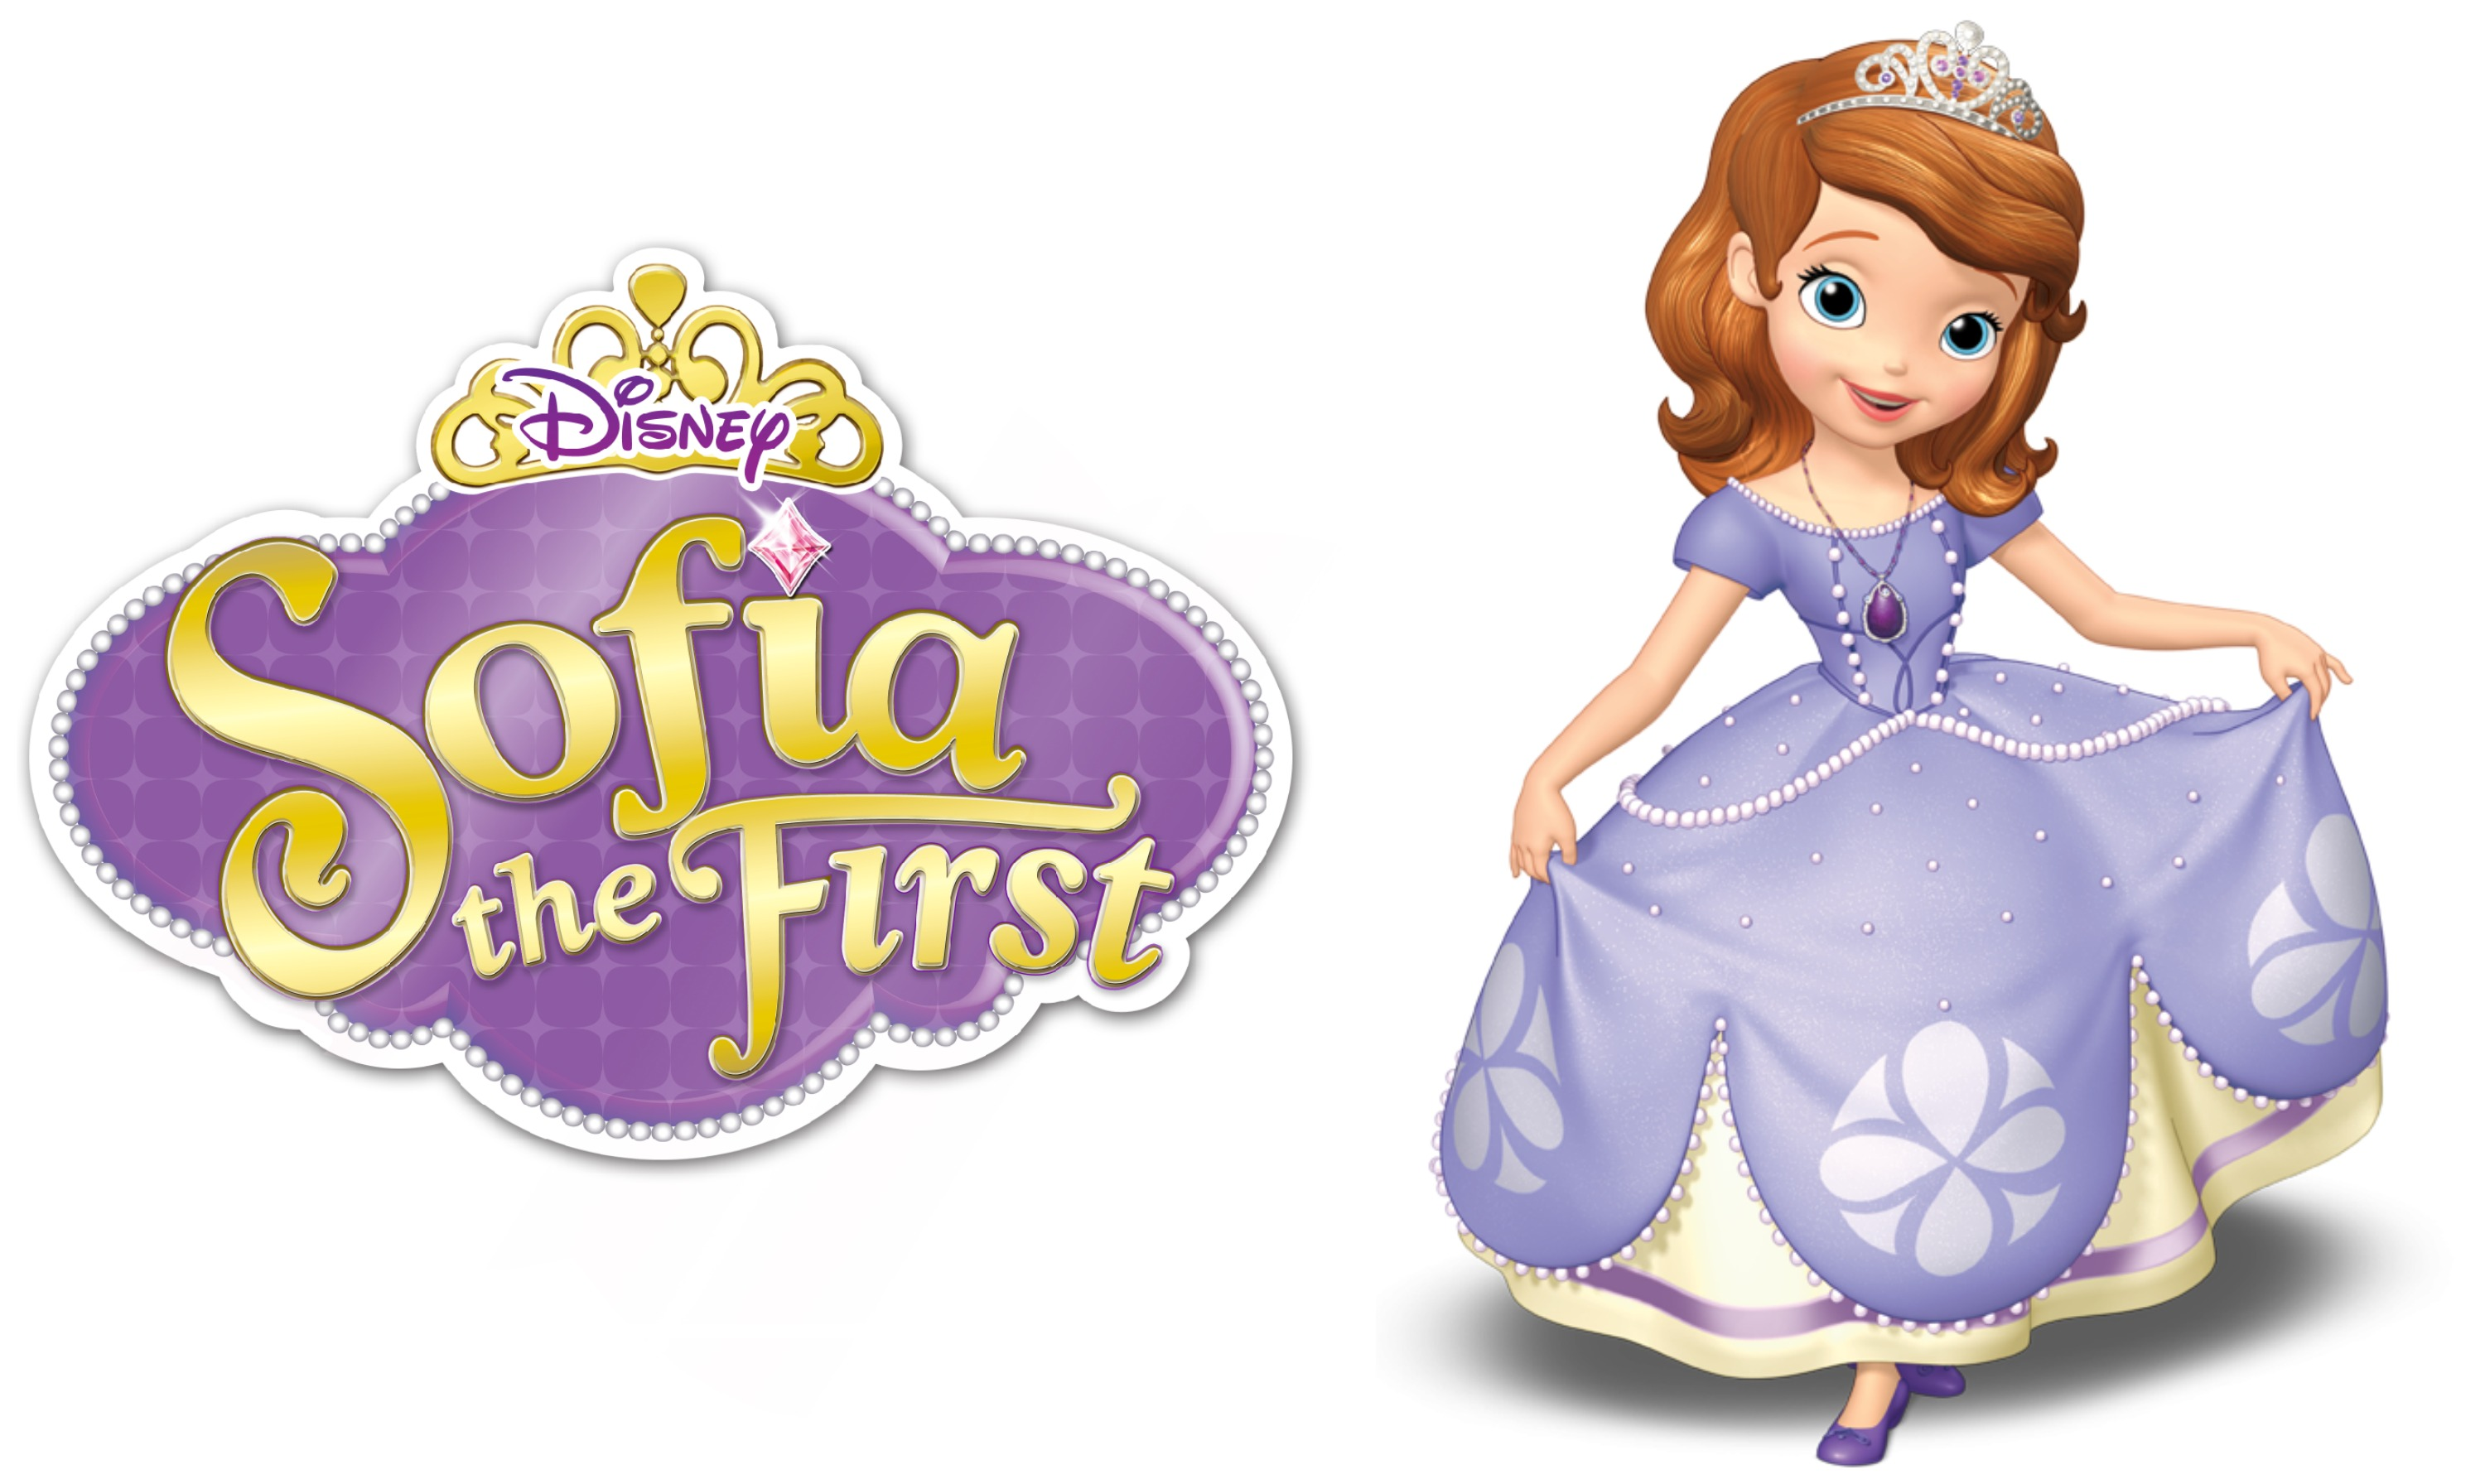 Disney's Sofia The First